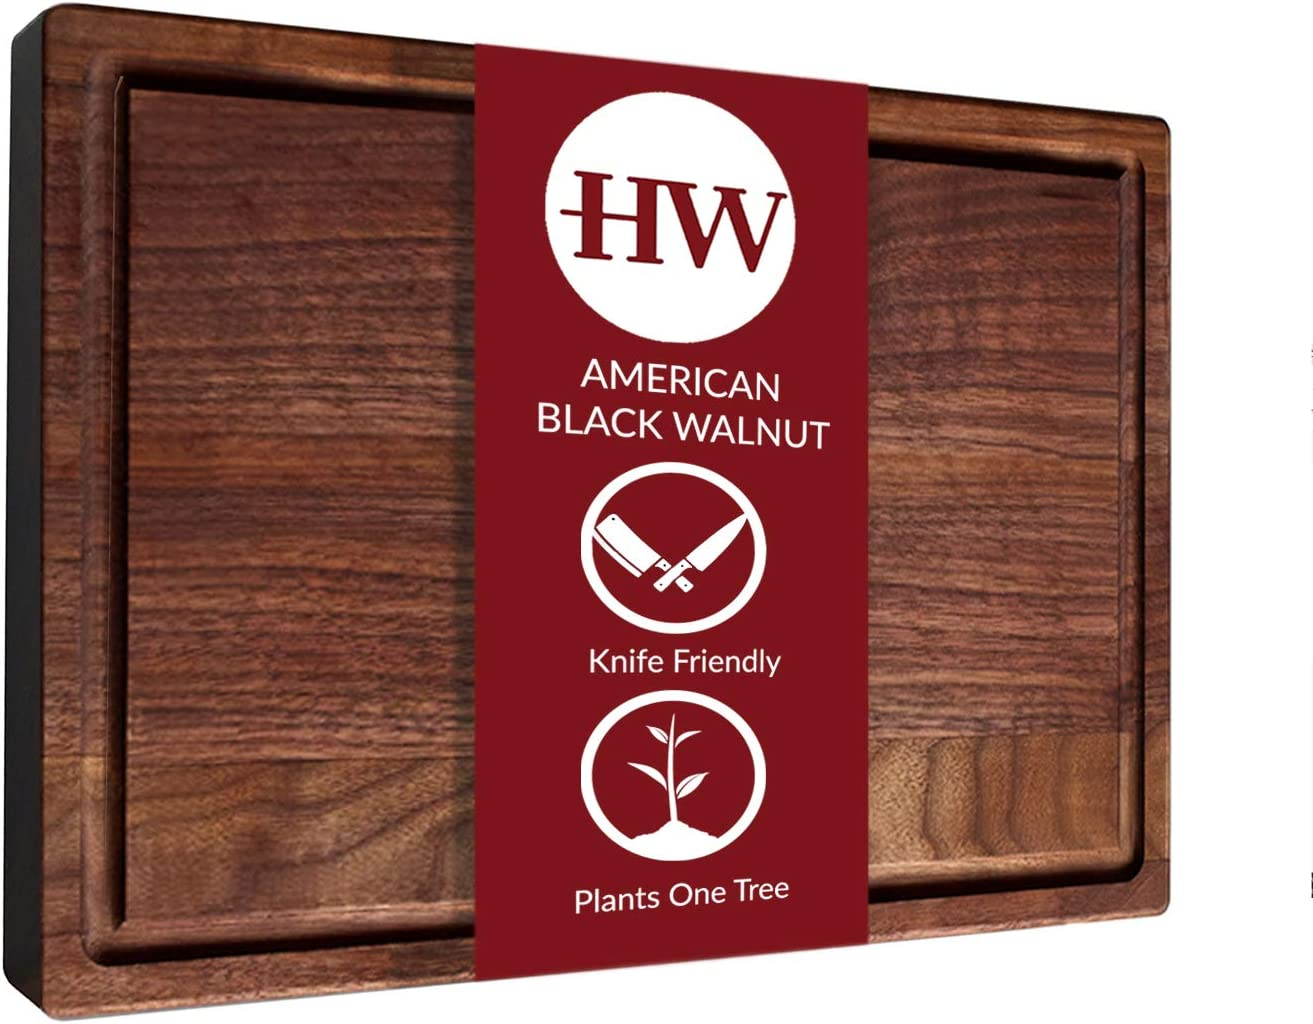 Large American Walnut Wood Cutting Heritage High material for Board by Kitchen favorite